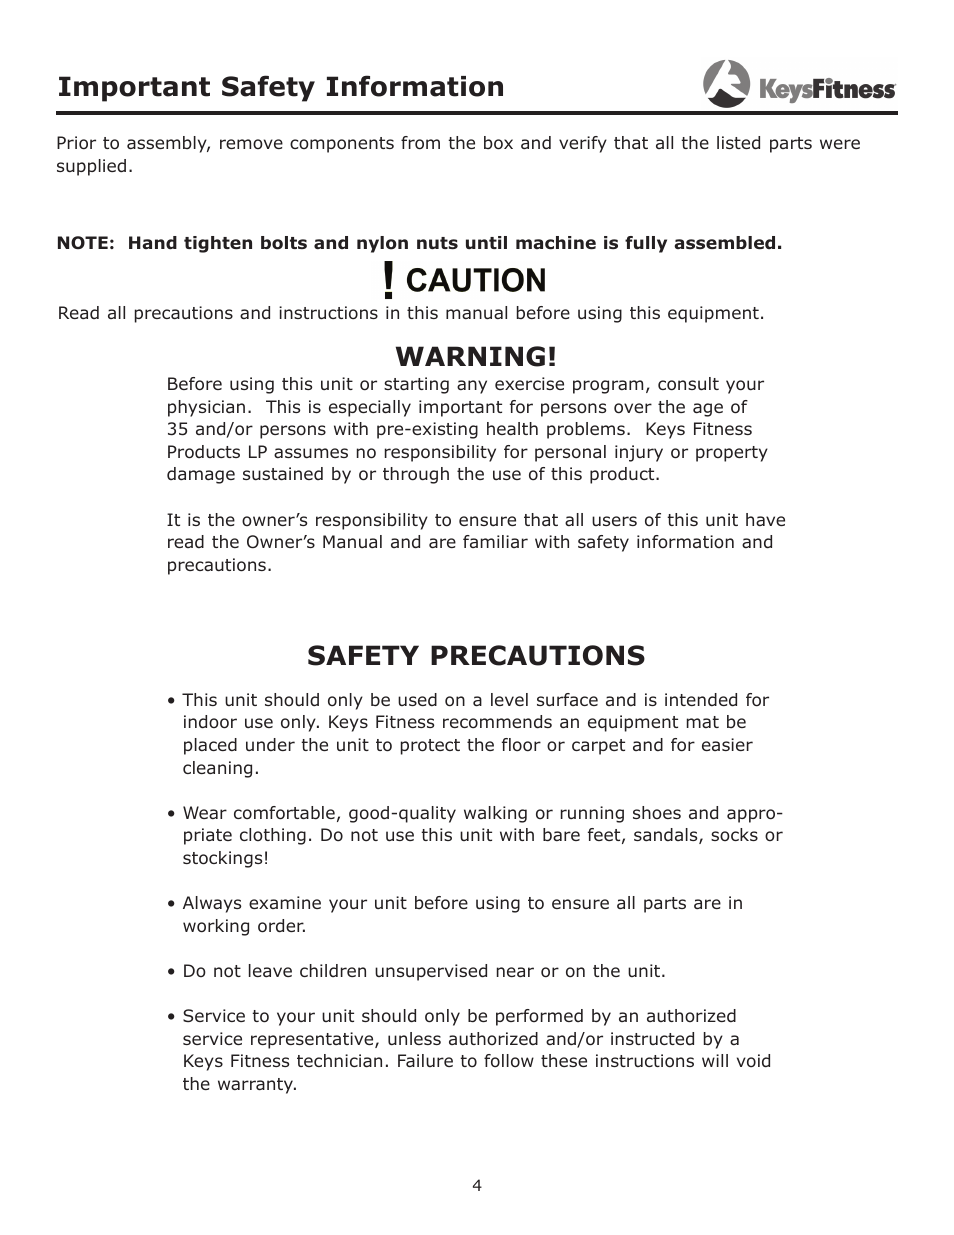 Important safety information, Warning, Safety precautions